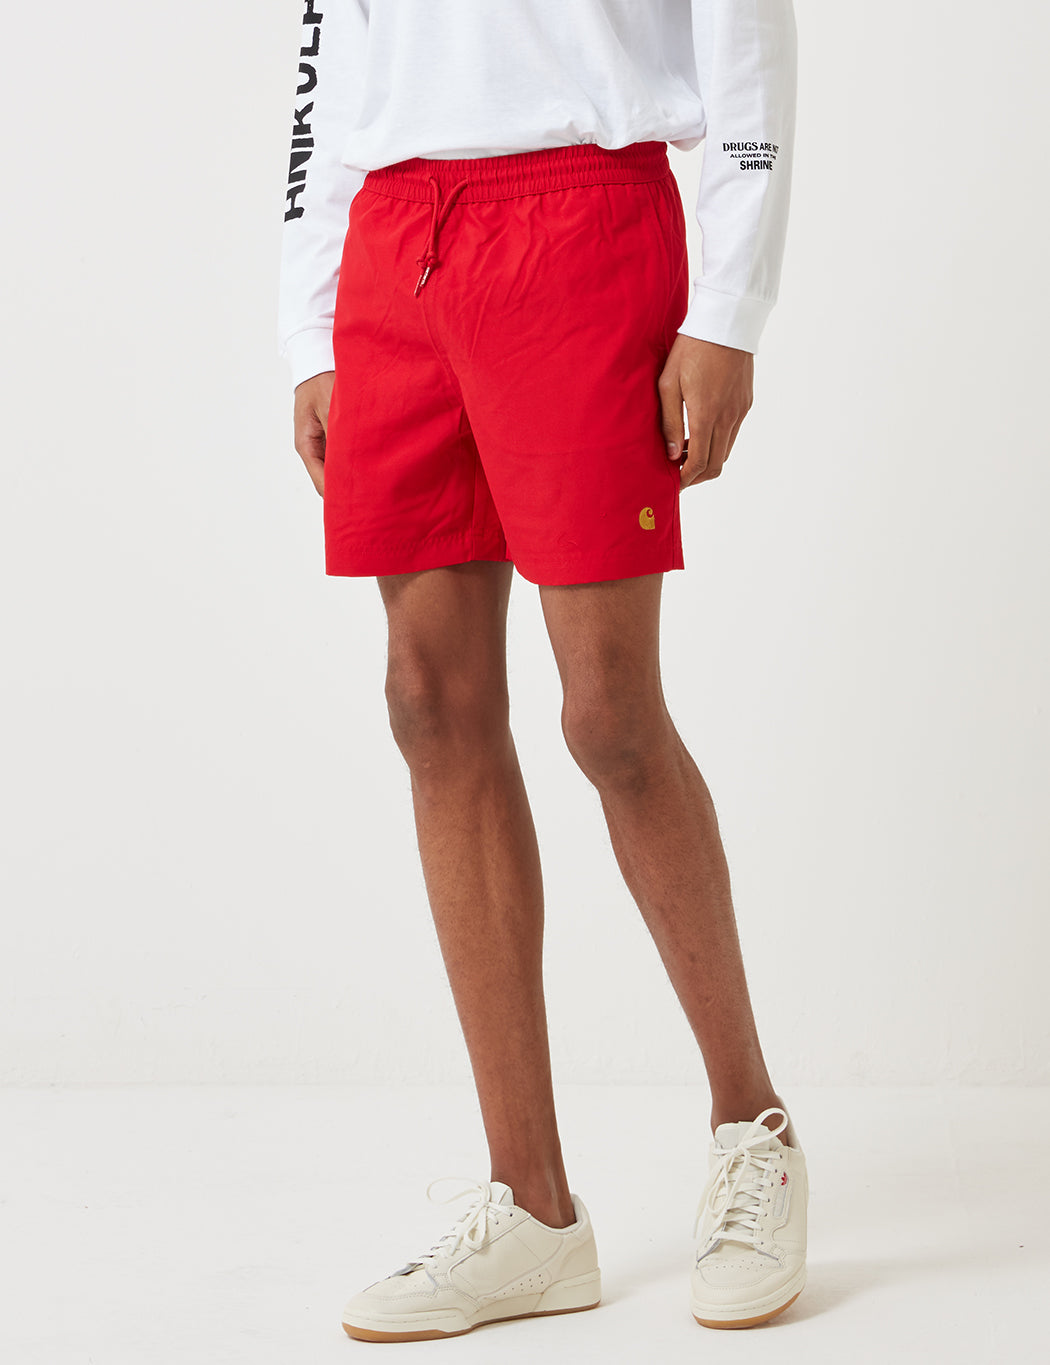 a67122e3c4 Carhartt Chase Swim Shorts - Cardinal Red | URBAN EXCESS.